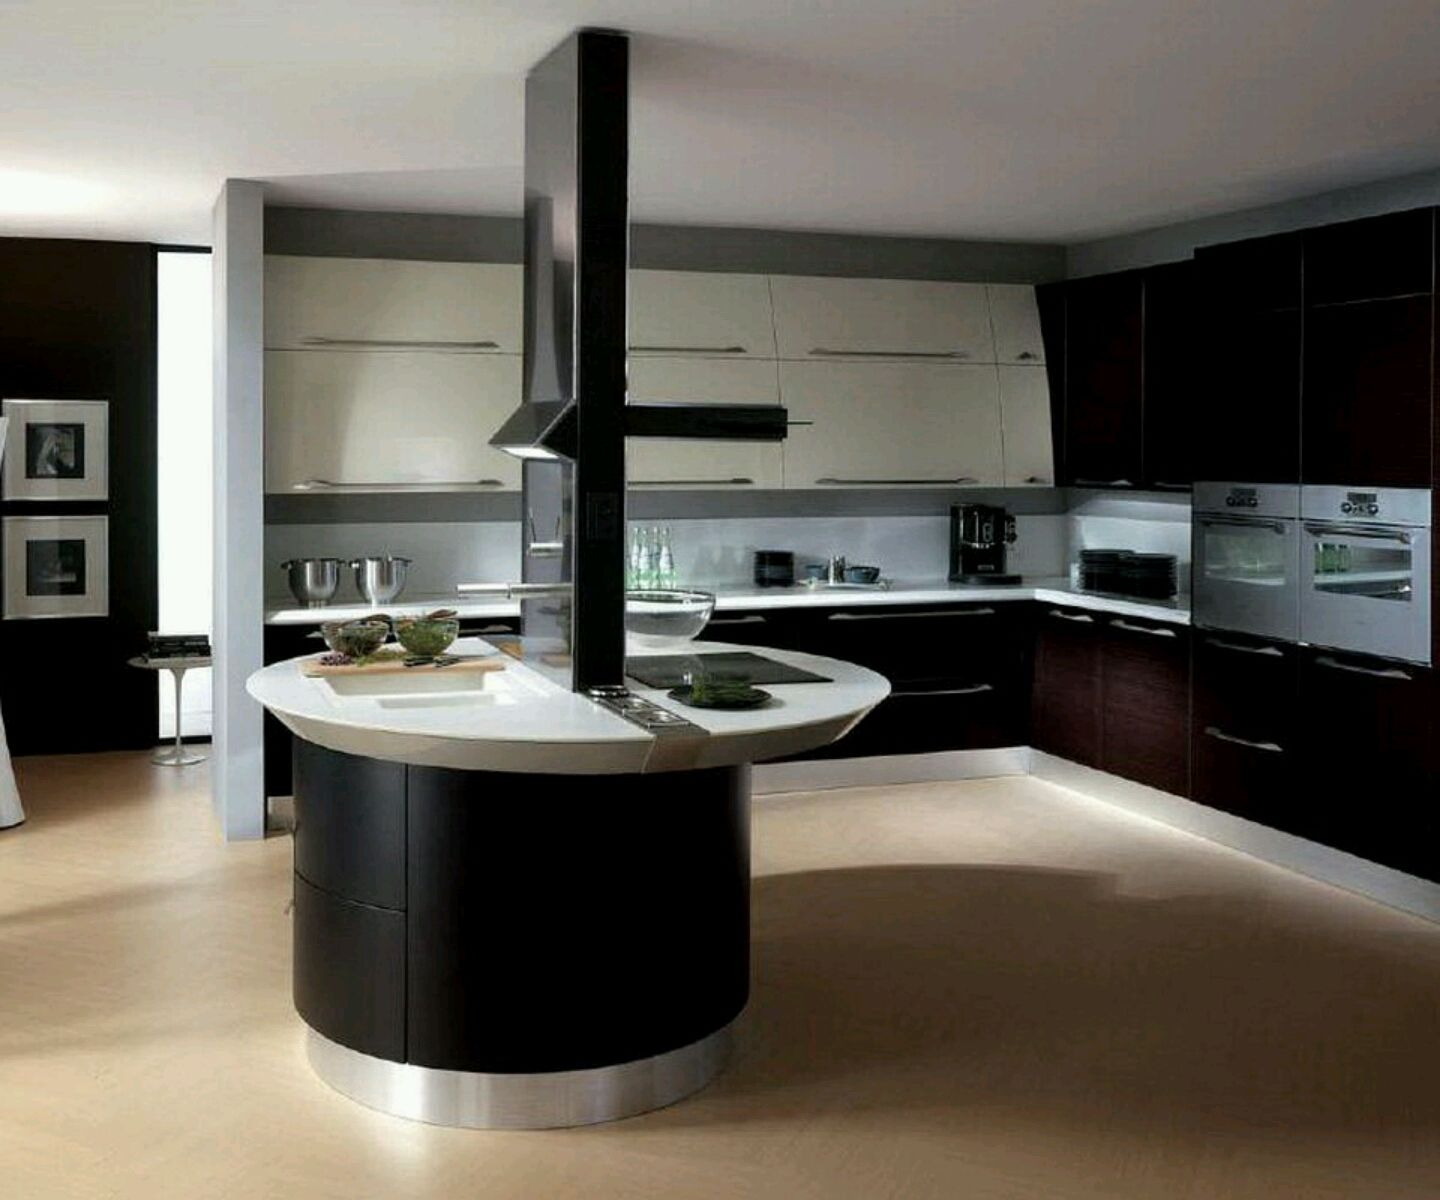 Luxury Modern Kitchen Designs Decoration Custom Smart Kitchen Islands  Buscar Con Google  Arquitectura Y . Inspiration Design